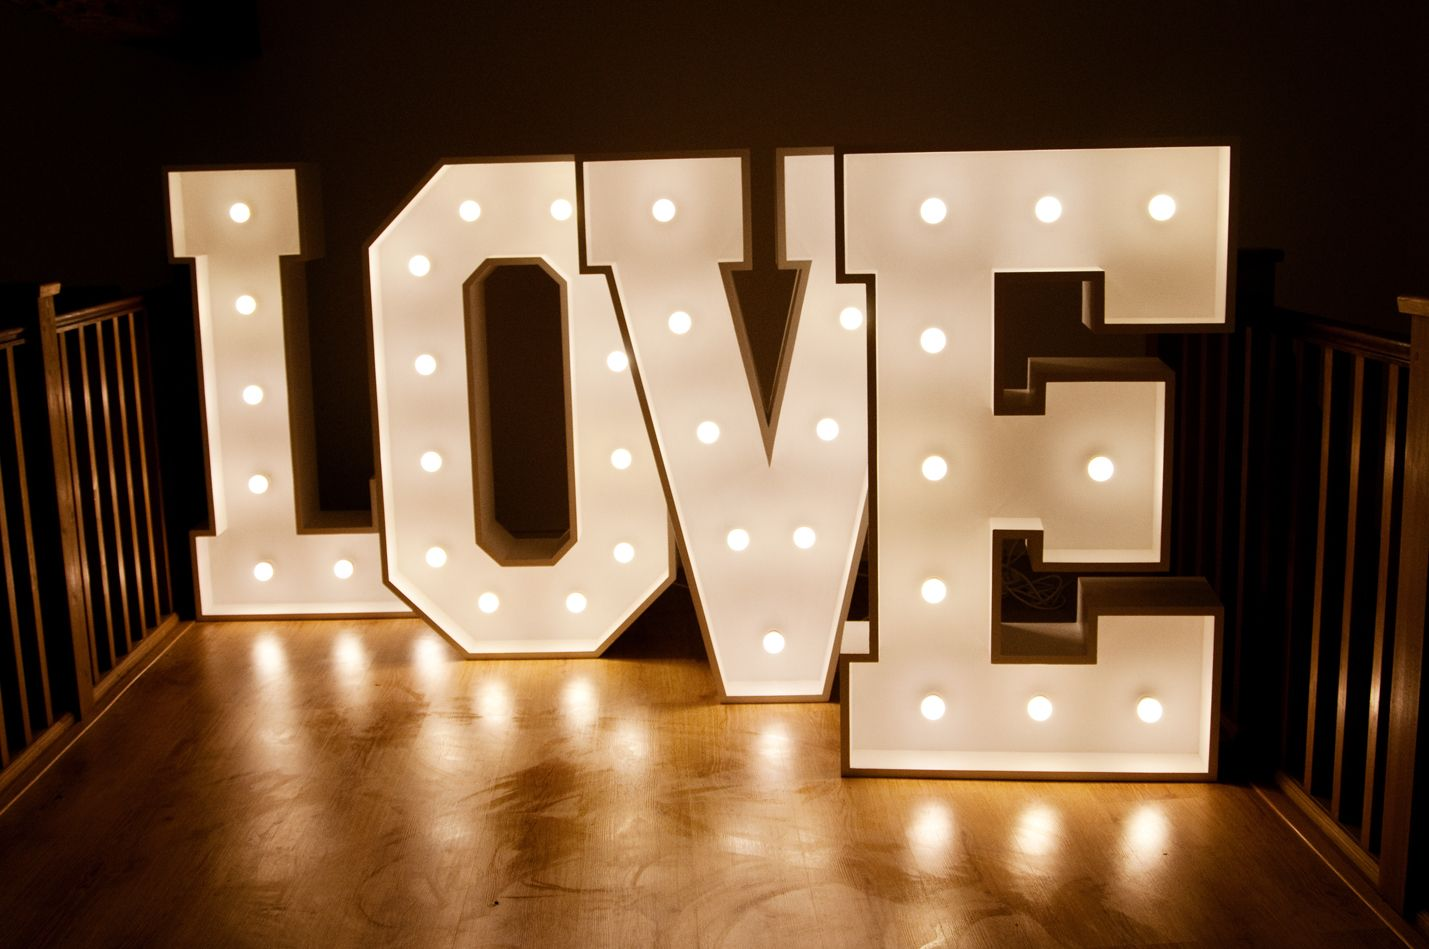 Light Up Letter For Hire. Marquee Lights Letter Lights